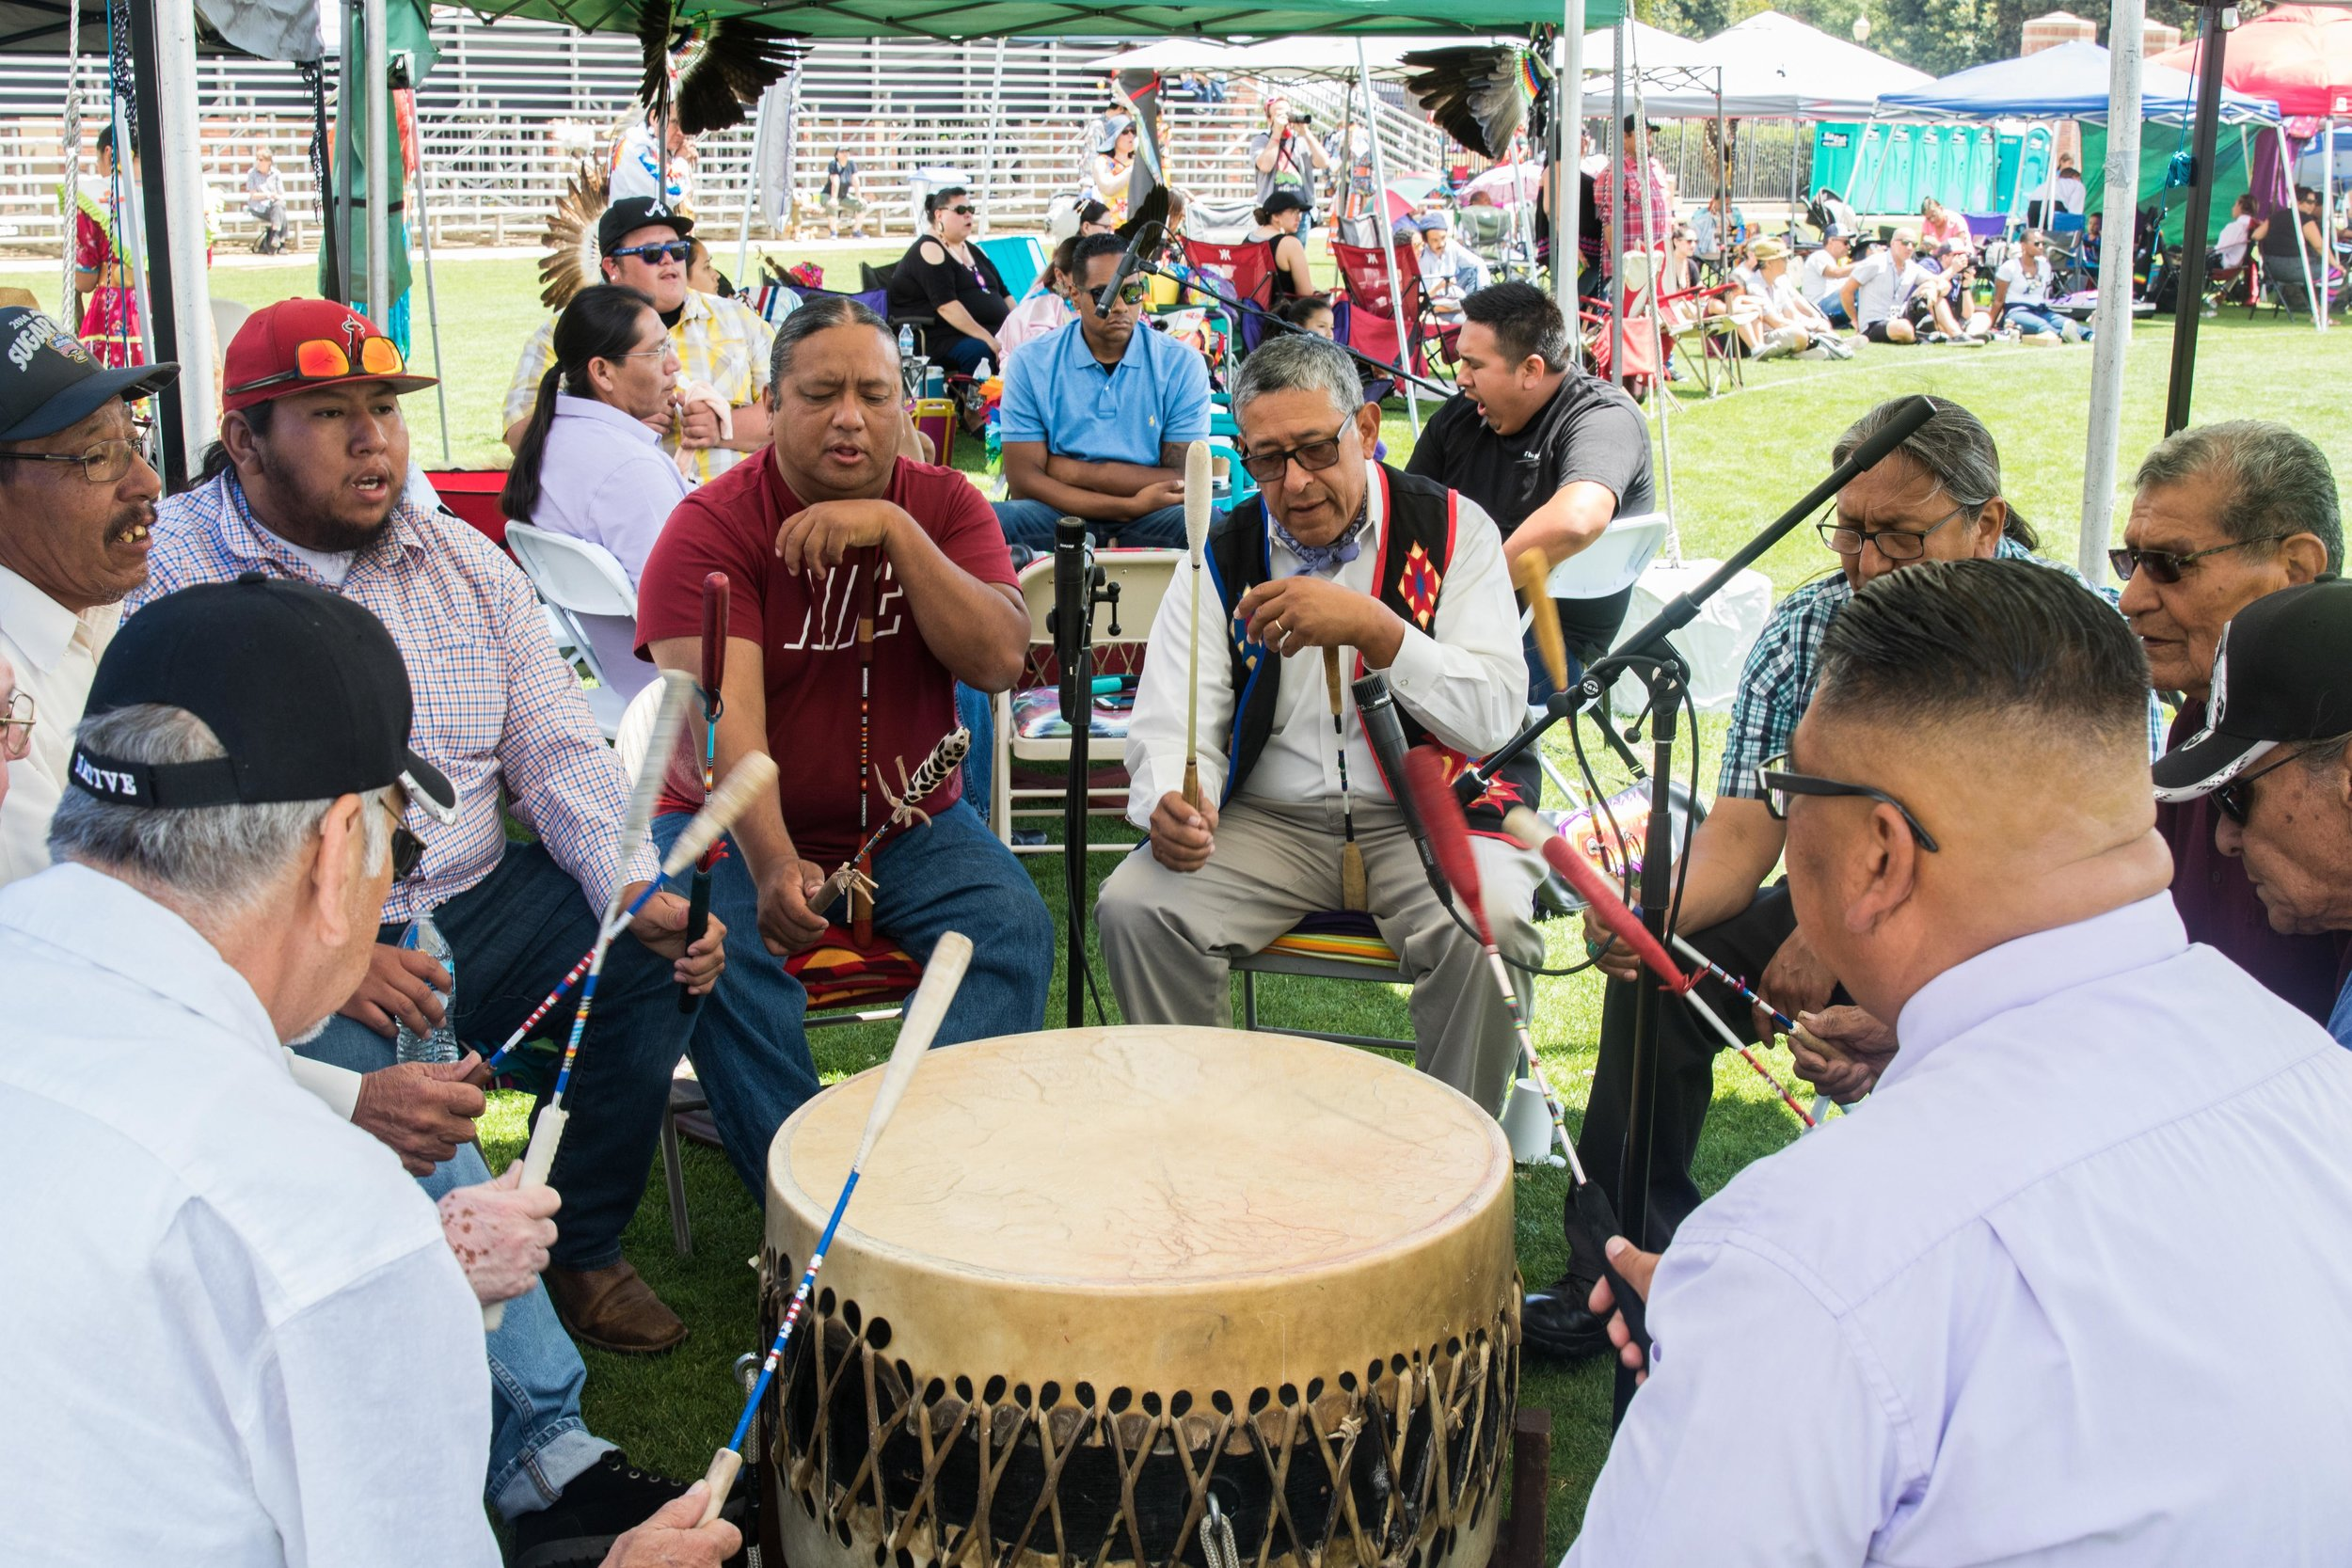 Members of various Indigenous tribes join together to play the drums for one of the numerous dance routines at the thirty-third annual UCLA Pow-Wow. Drums and dancing are used to give thanks and pay respect to The Creator in many Indigenous Cultures. (Zane Meyer-Thornton/Corsair Photo)